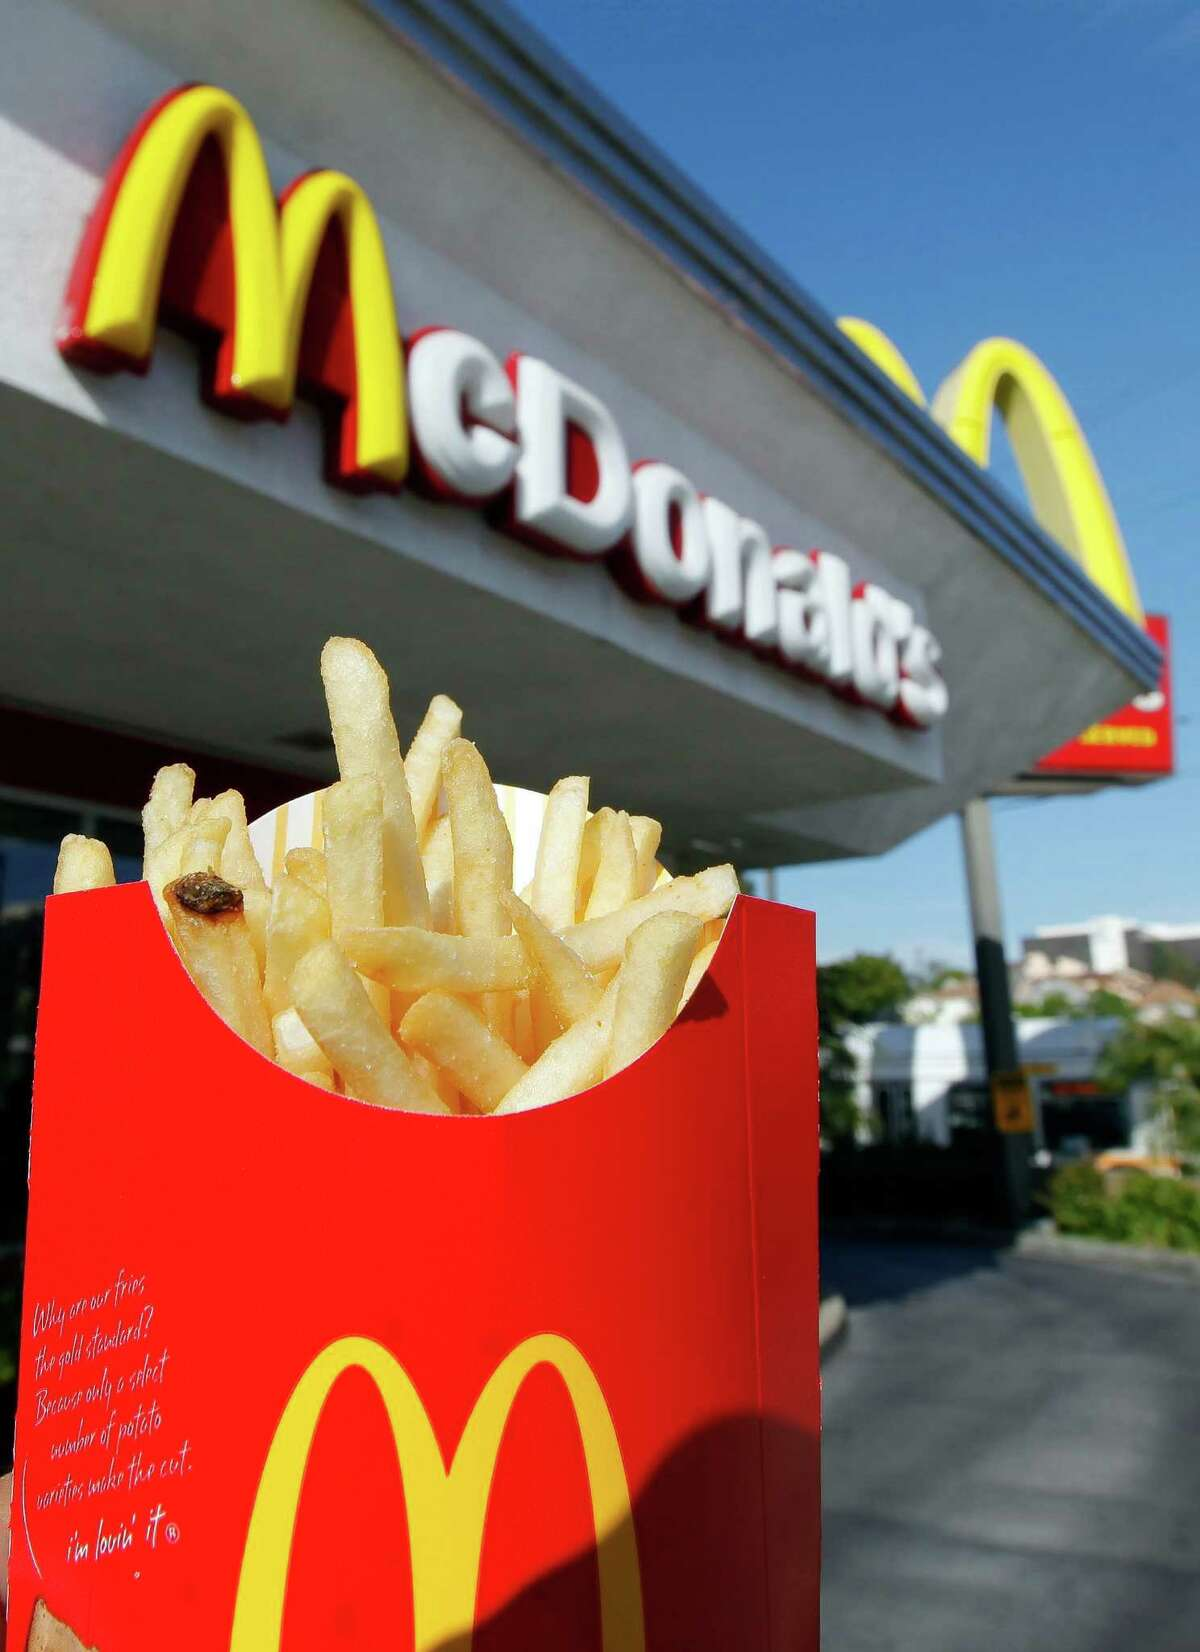 McDonald's: Grab a free medium fry, no purchase necessary. To get the deals, you'll need to download the McDonald's app (if you don't already have it) and access the offer using the app's